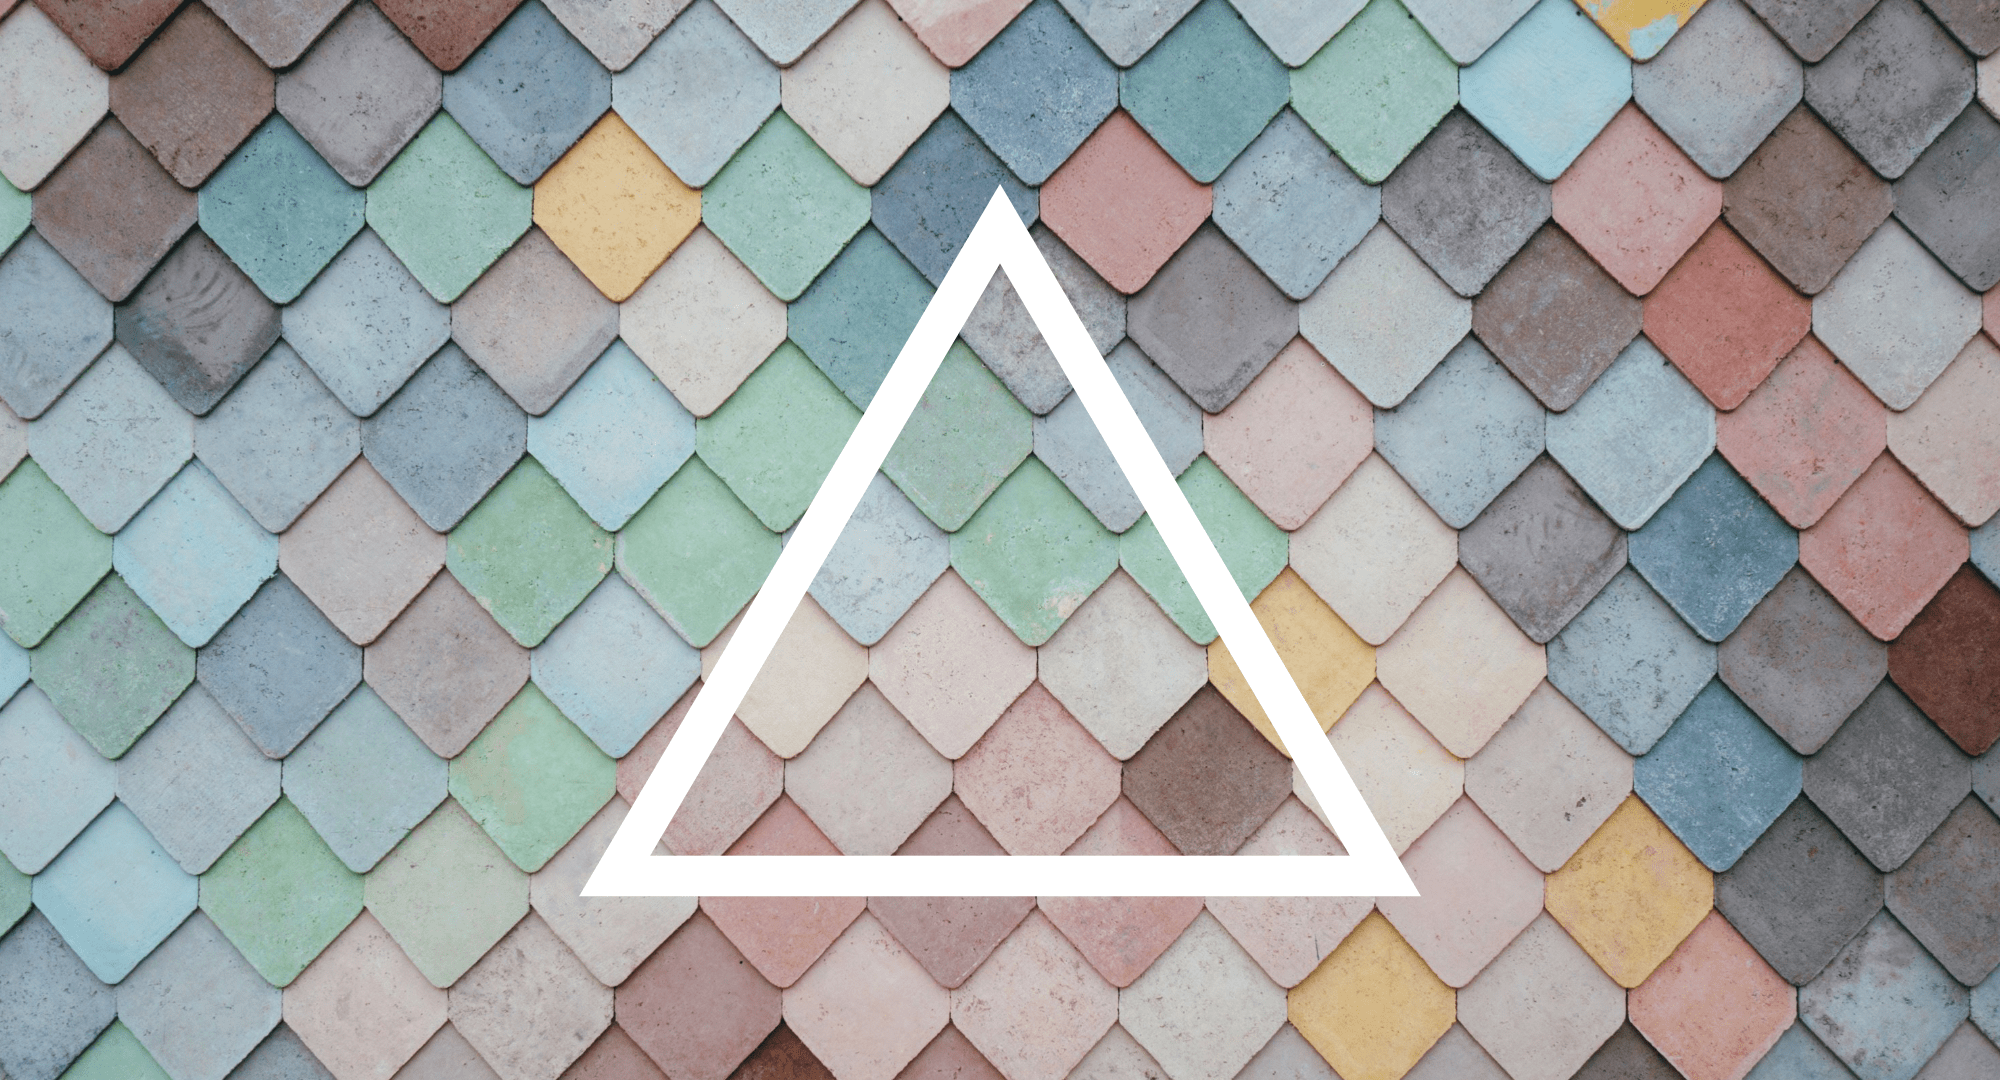 2000x1080 Adidas wallpaper-pastel colors Image - Customize & Download it for ...